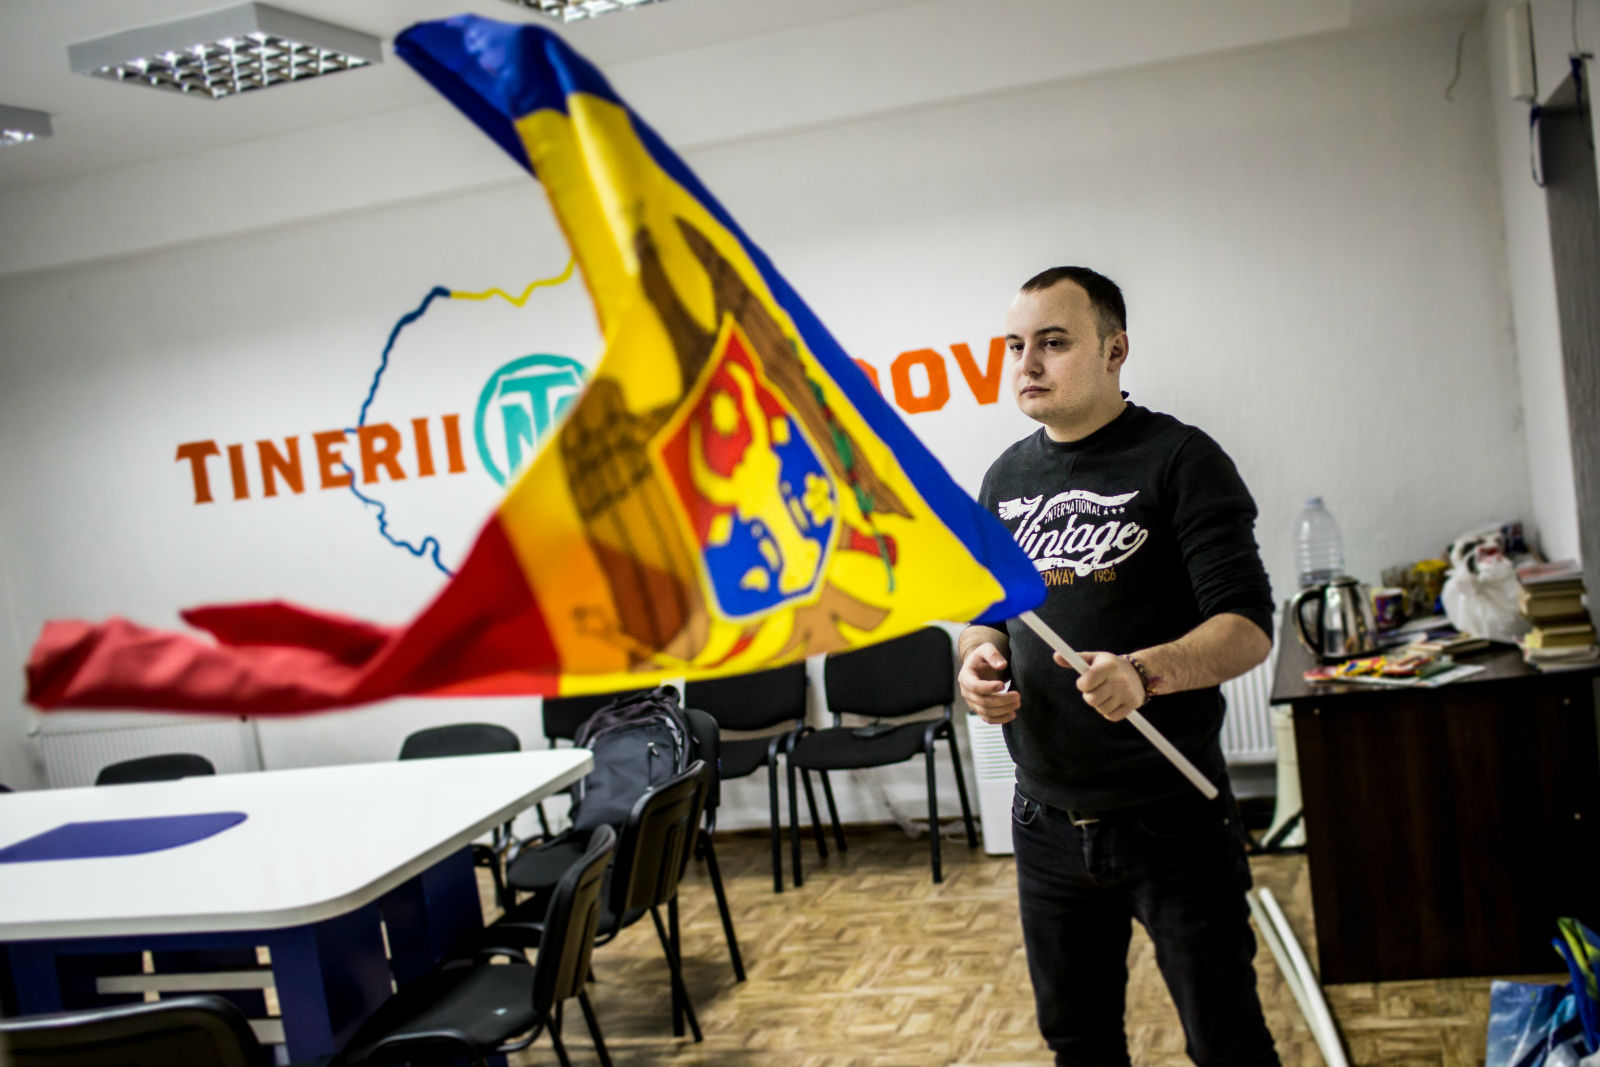 A member of Youth of Moldova waves the national flag